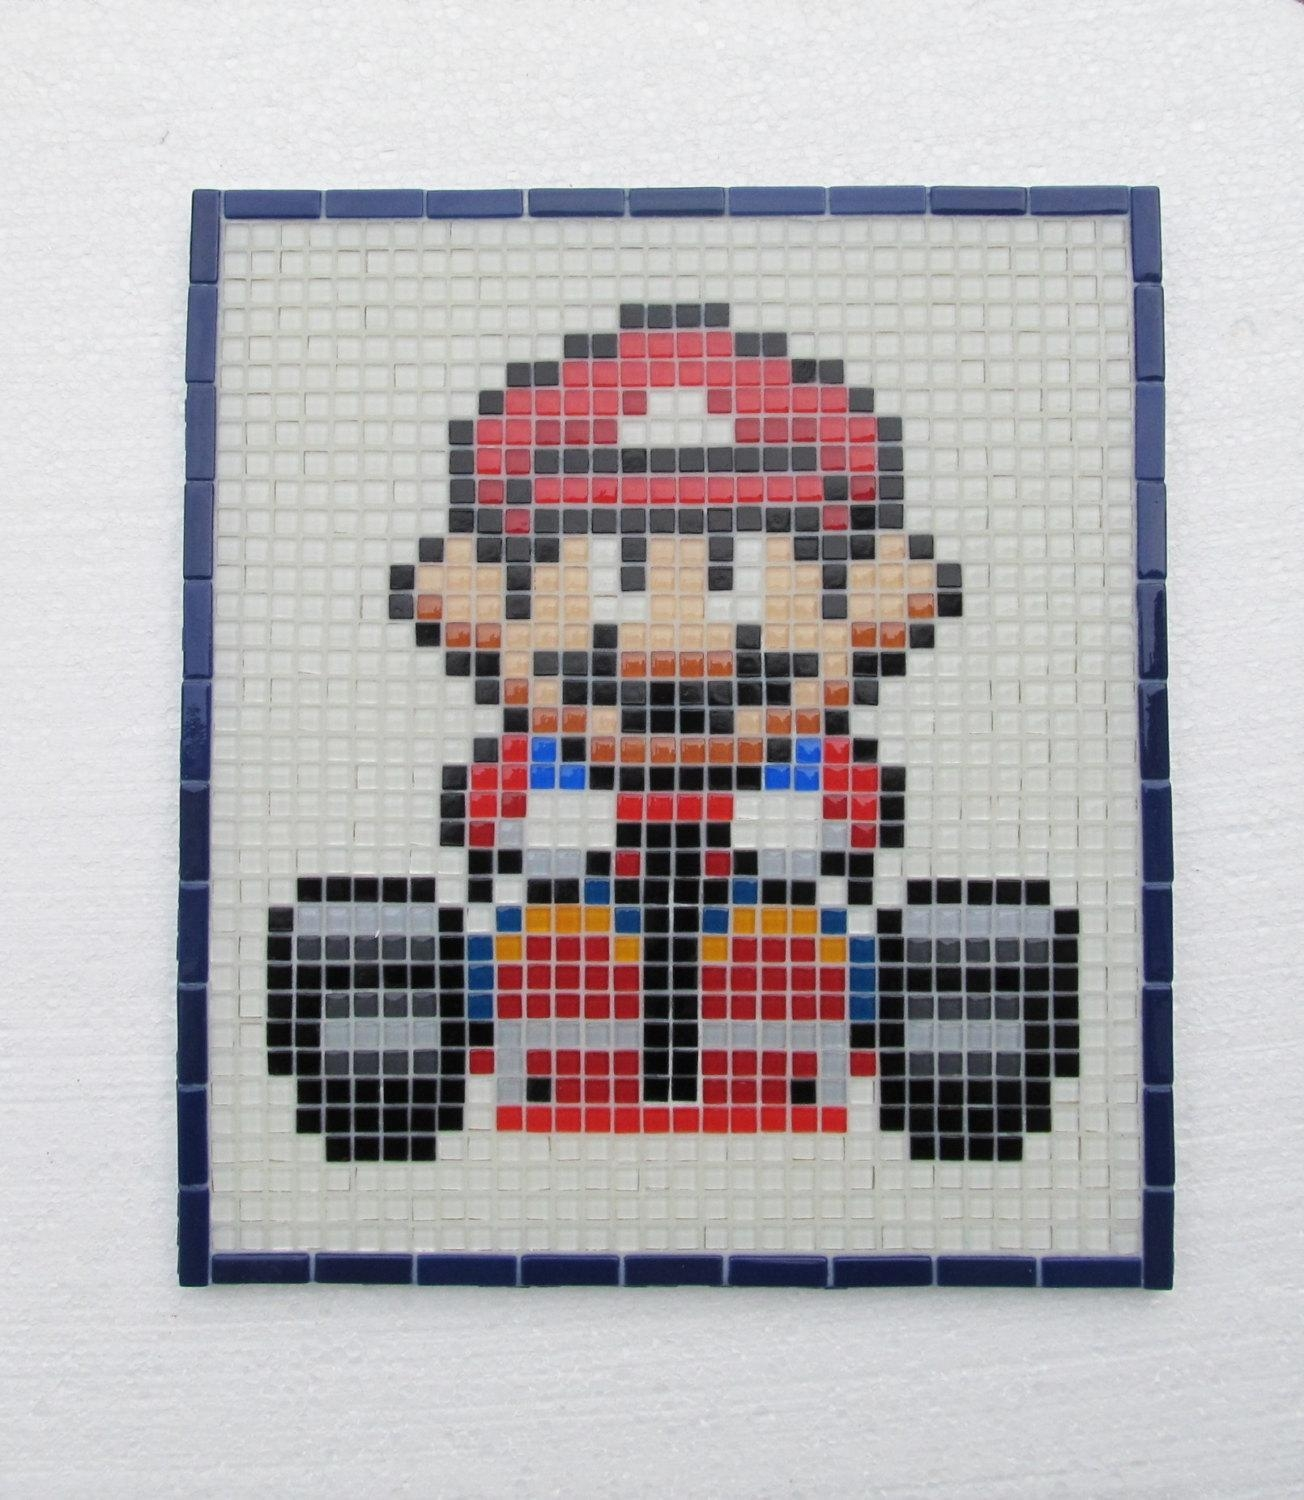 Super Mario Kart Handmade Mosaic Wall Art Glass Mosaic Wall For Pixel Mosaic Wall Art (Image 13 of 20)